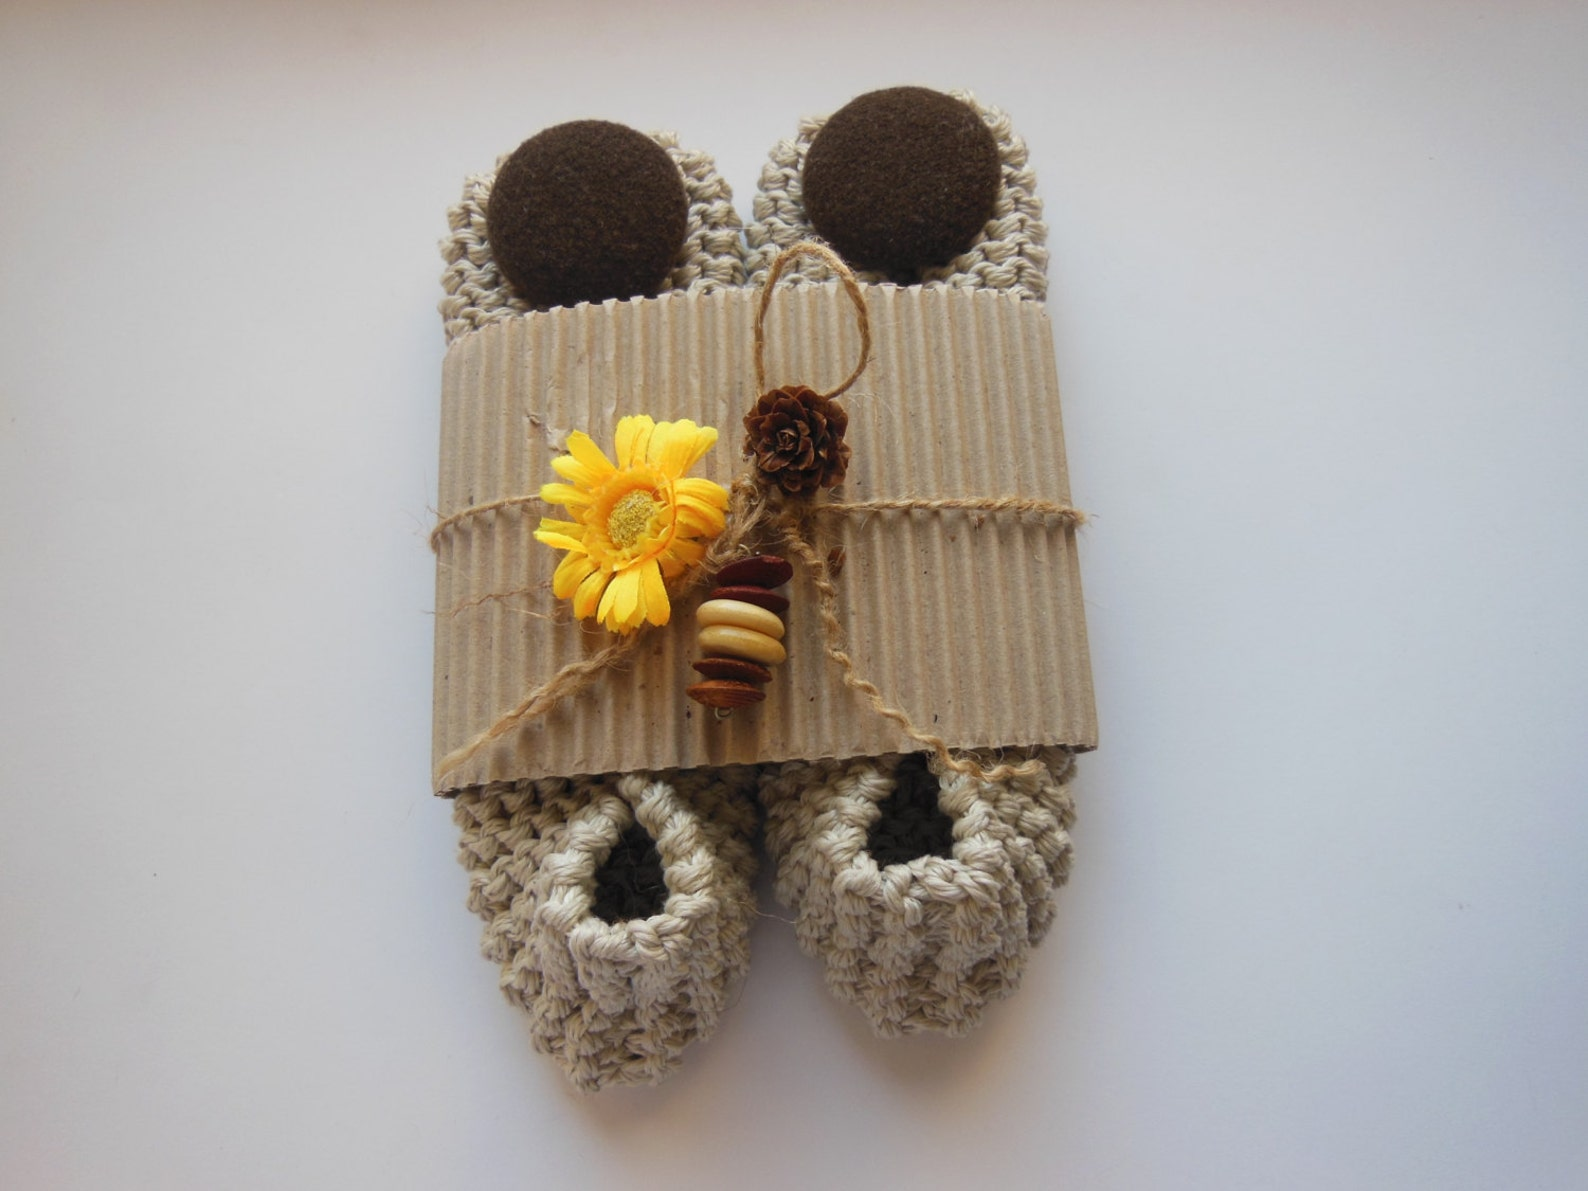 beige cotton women's slippers - footwear - ballet flats - handmade shoes - knitted slippers - nenaknit - gift idea gift wrap